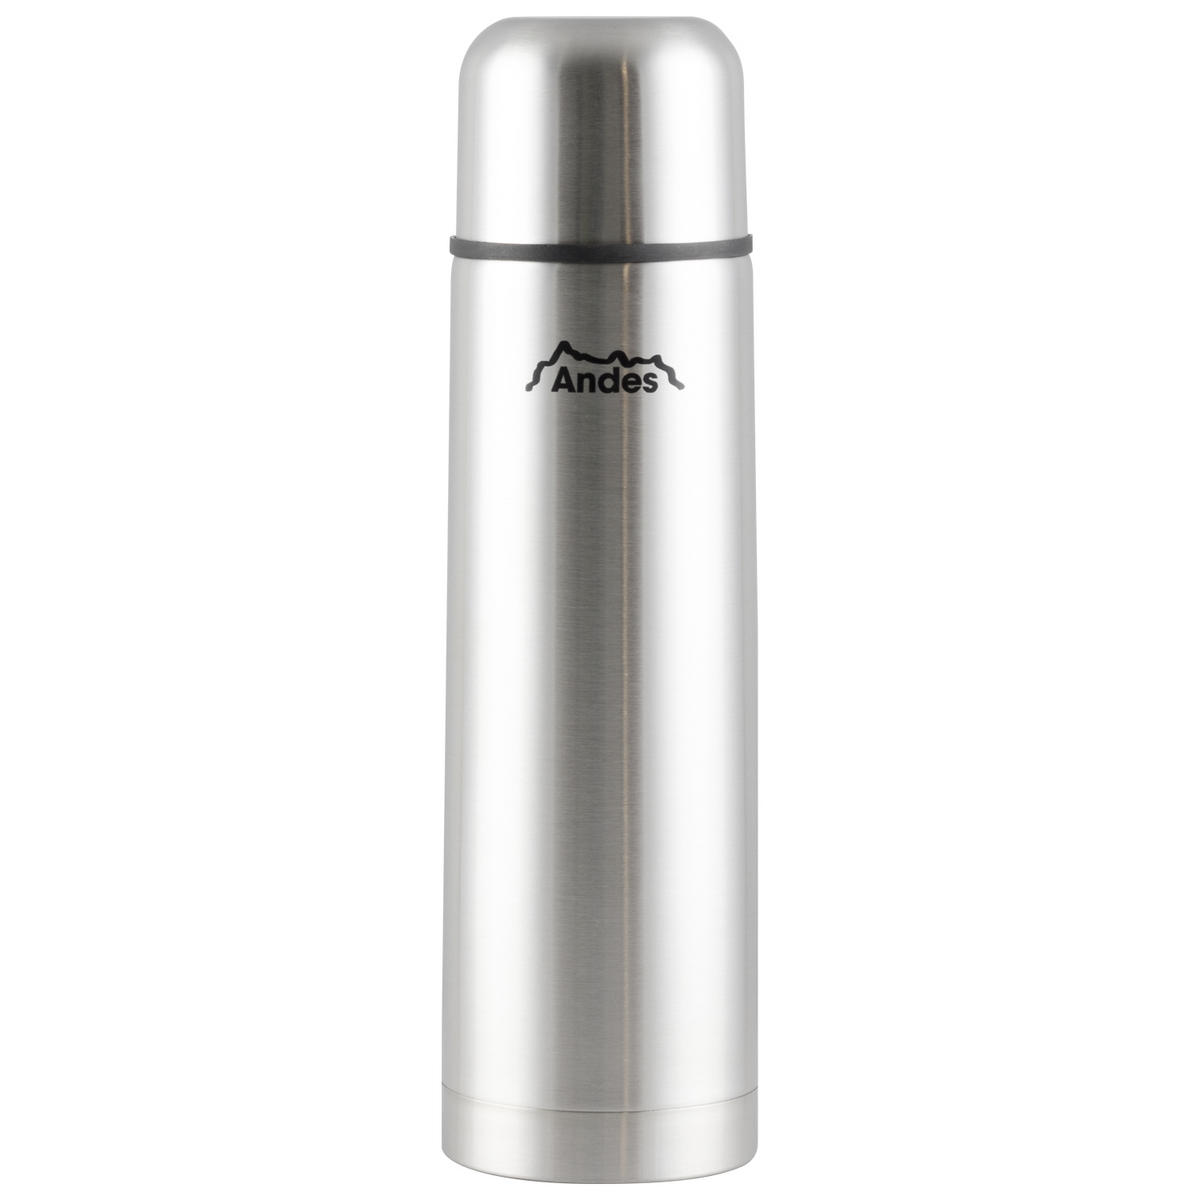 Andes Vacuum Flask - 500ml